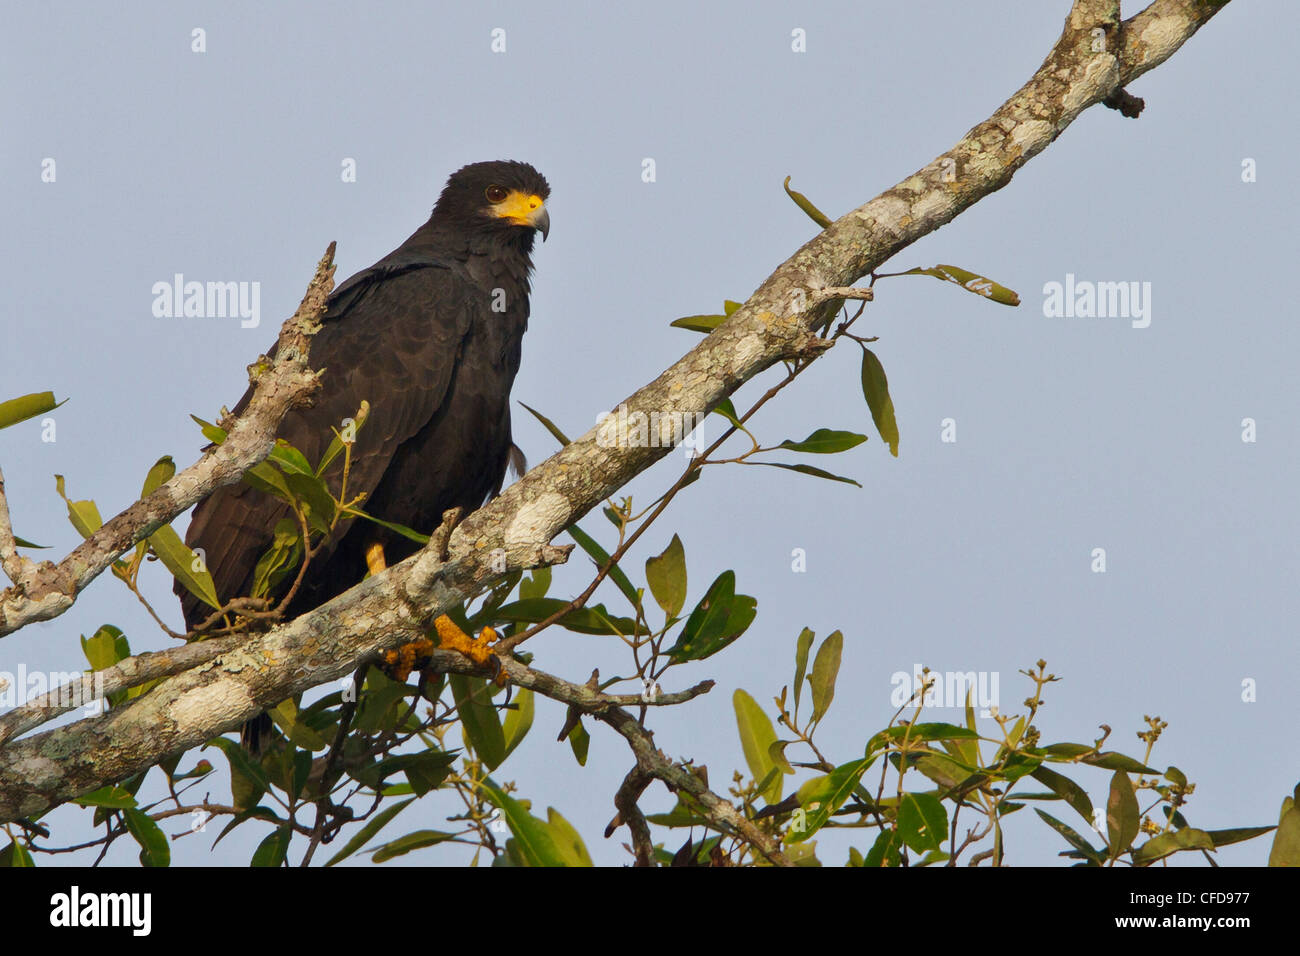 Common Black-Hawk (Buteogallus anthracinus) perched on a branch in Costa Rica. - Stock Image